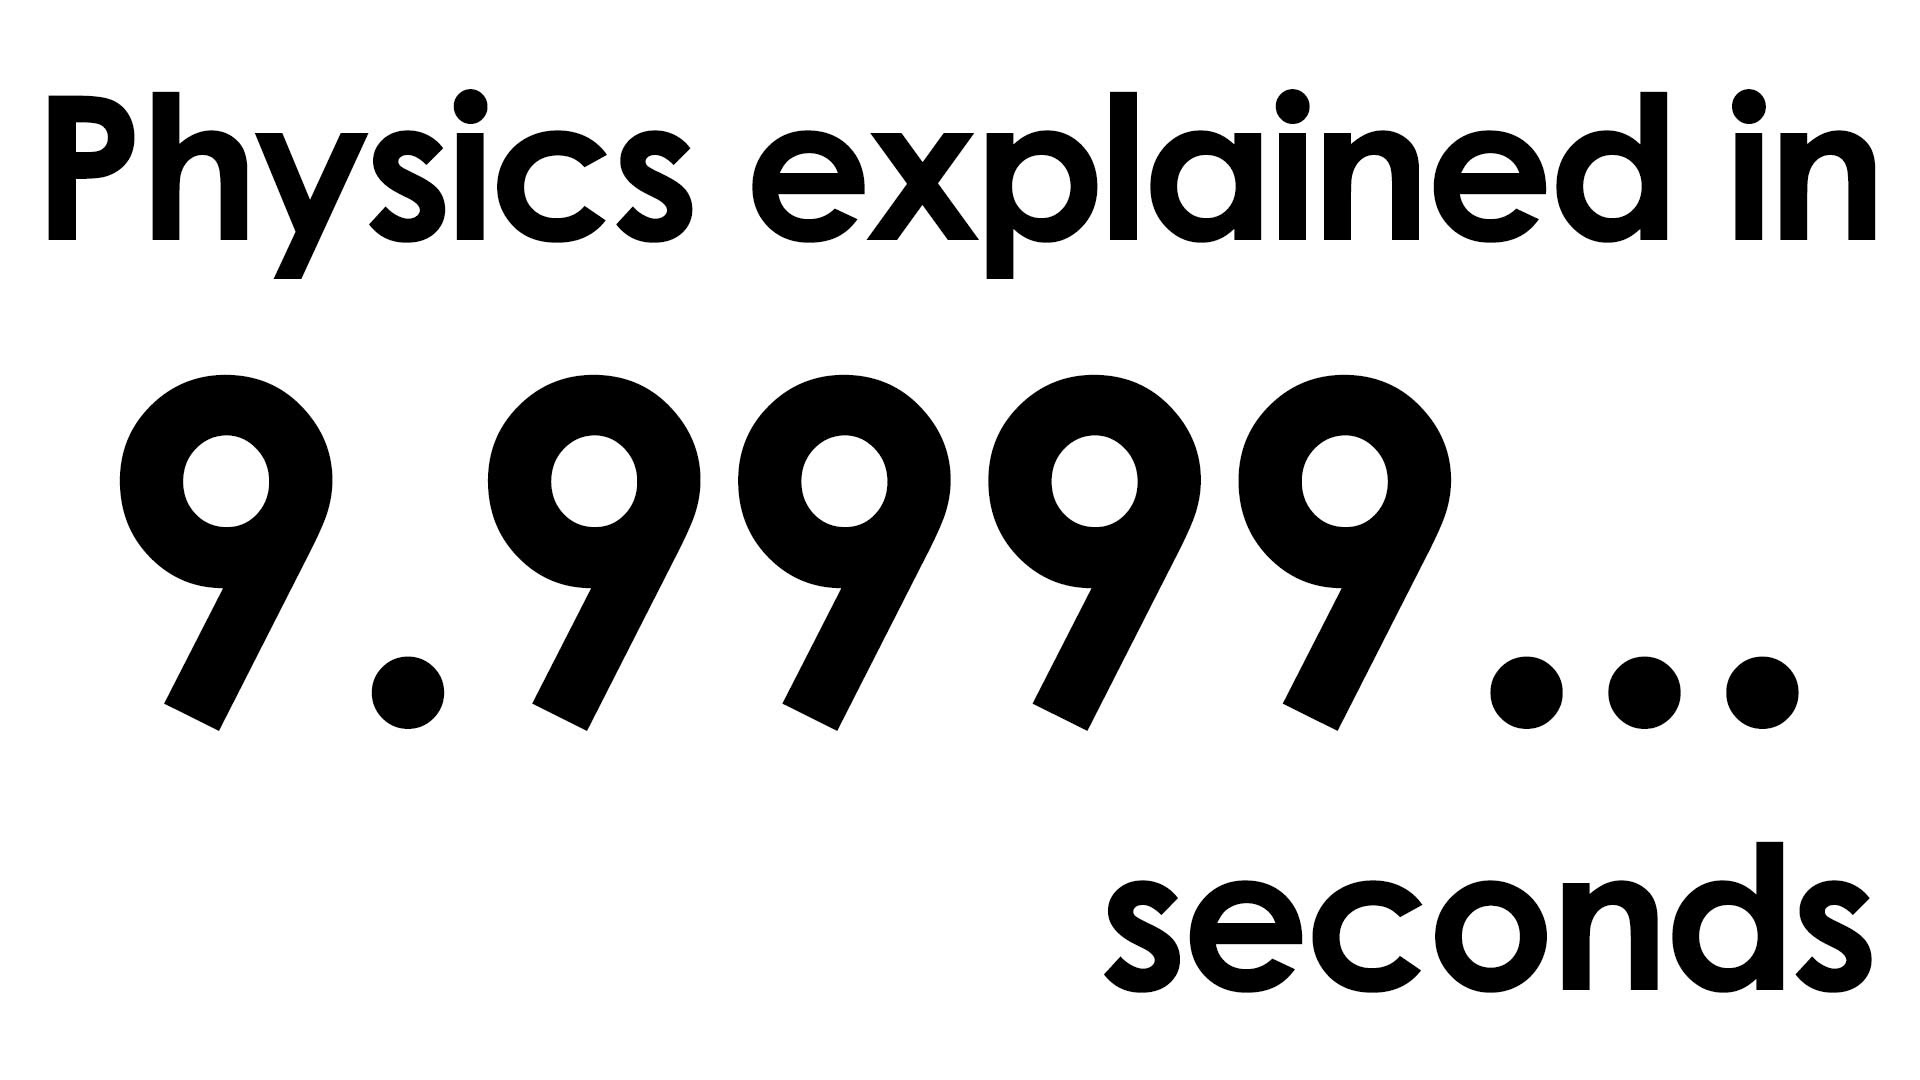 MinutePhysics Explains Physics in Daily Ten-Second Videos For a Month